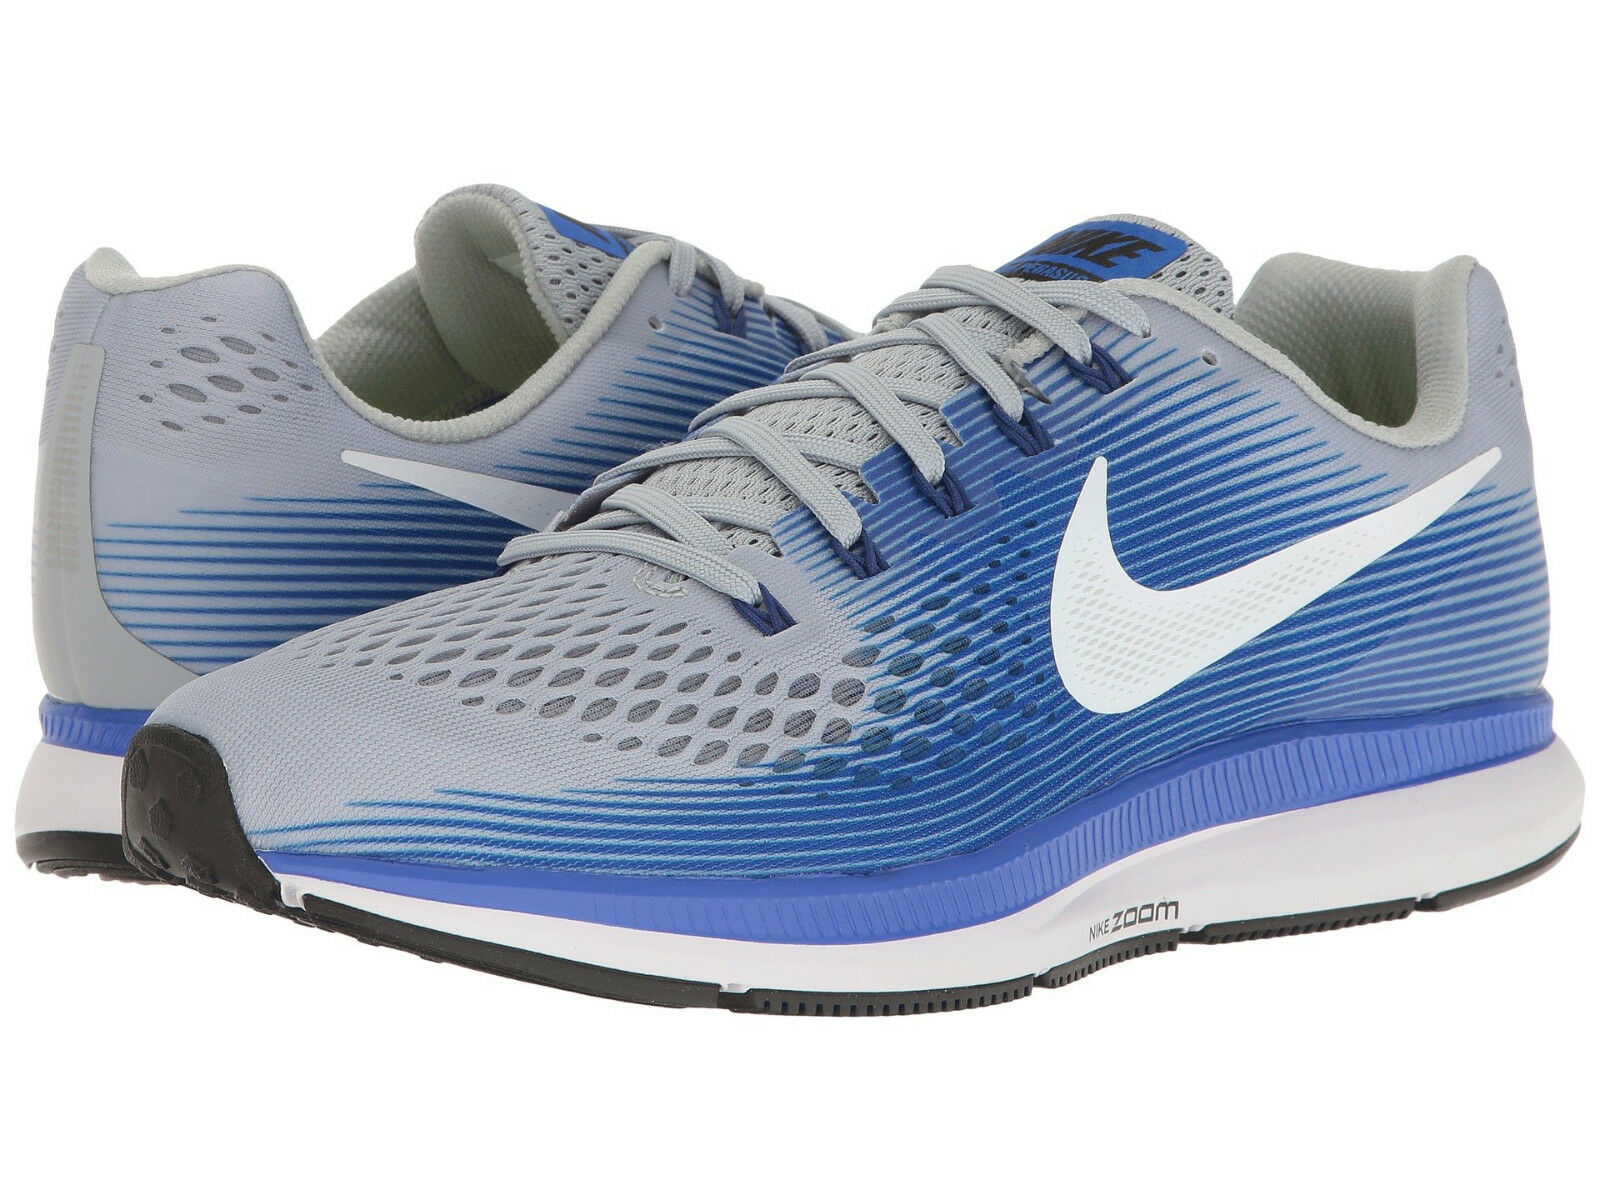 Nike Air Zoom Pegasus 34, Men's Sizes 10-13 Extra Wide (4E) Grey White bluee NEW